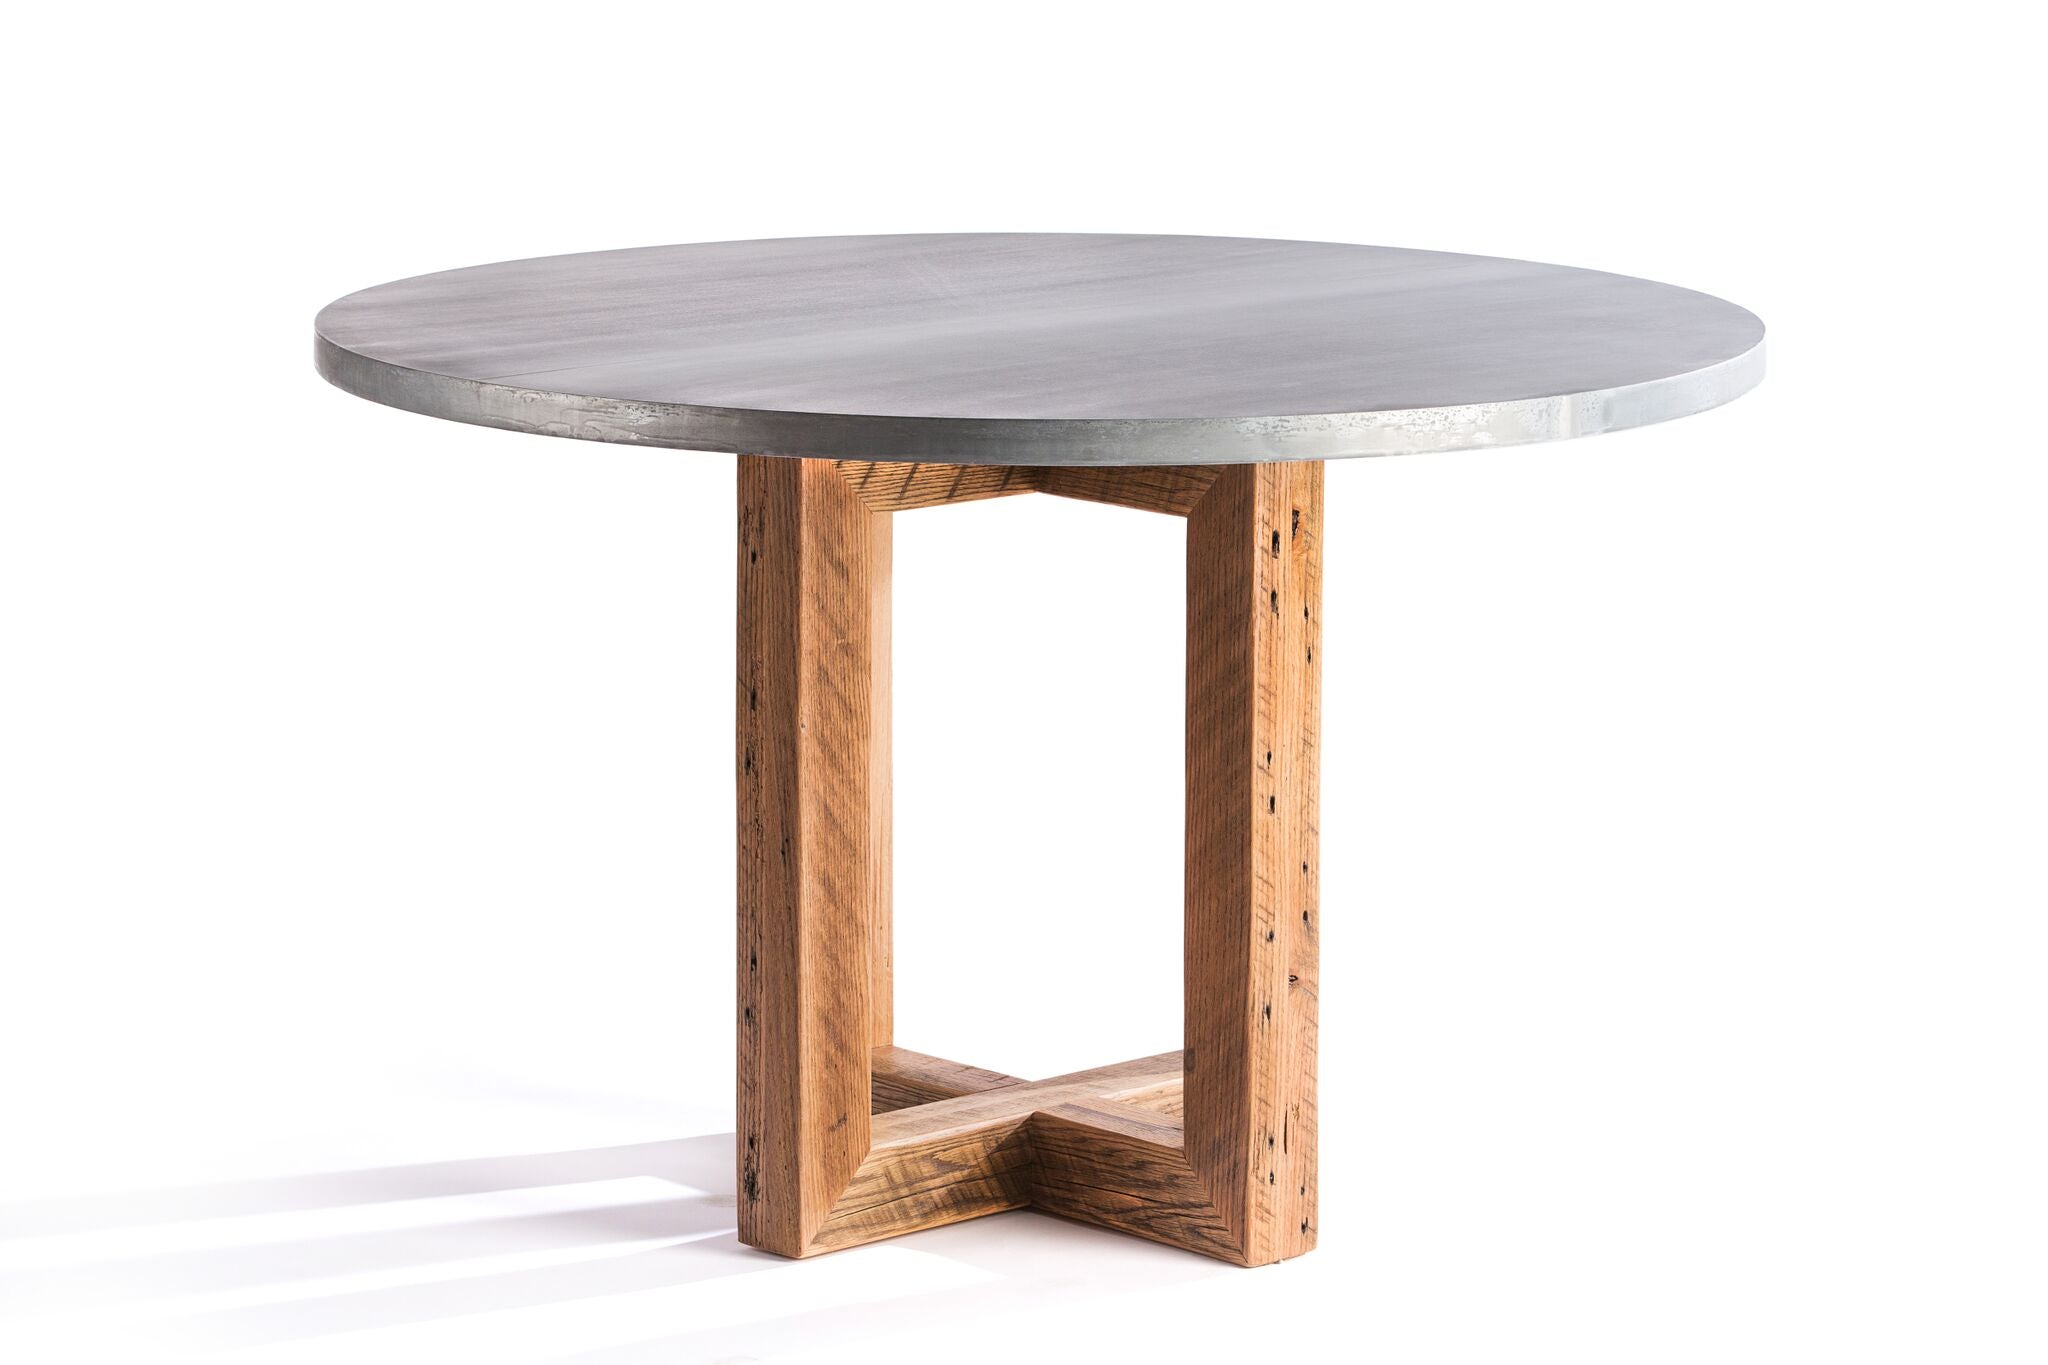 "Zinc Round Tables | Winston Table | CLASSIC | Natural Ash | CUSTOM SIZE D 42 H 29 | 1.5"" Standard